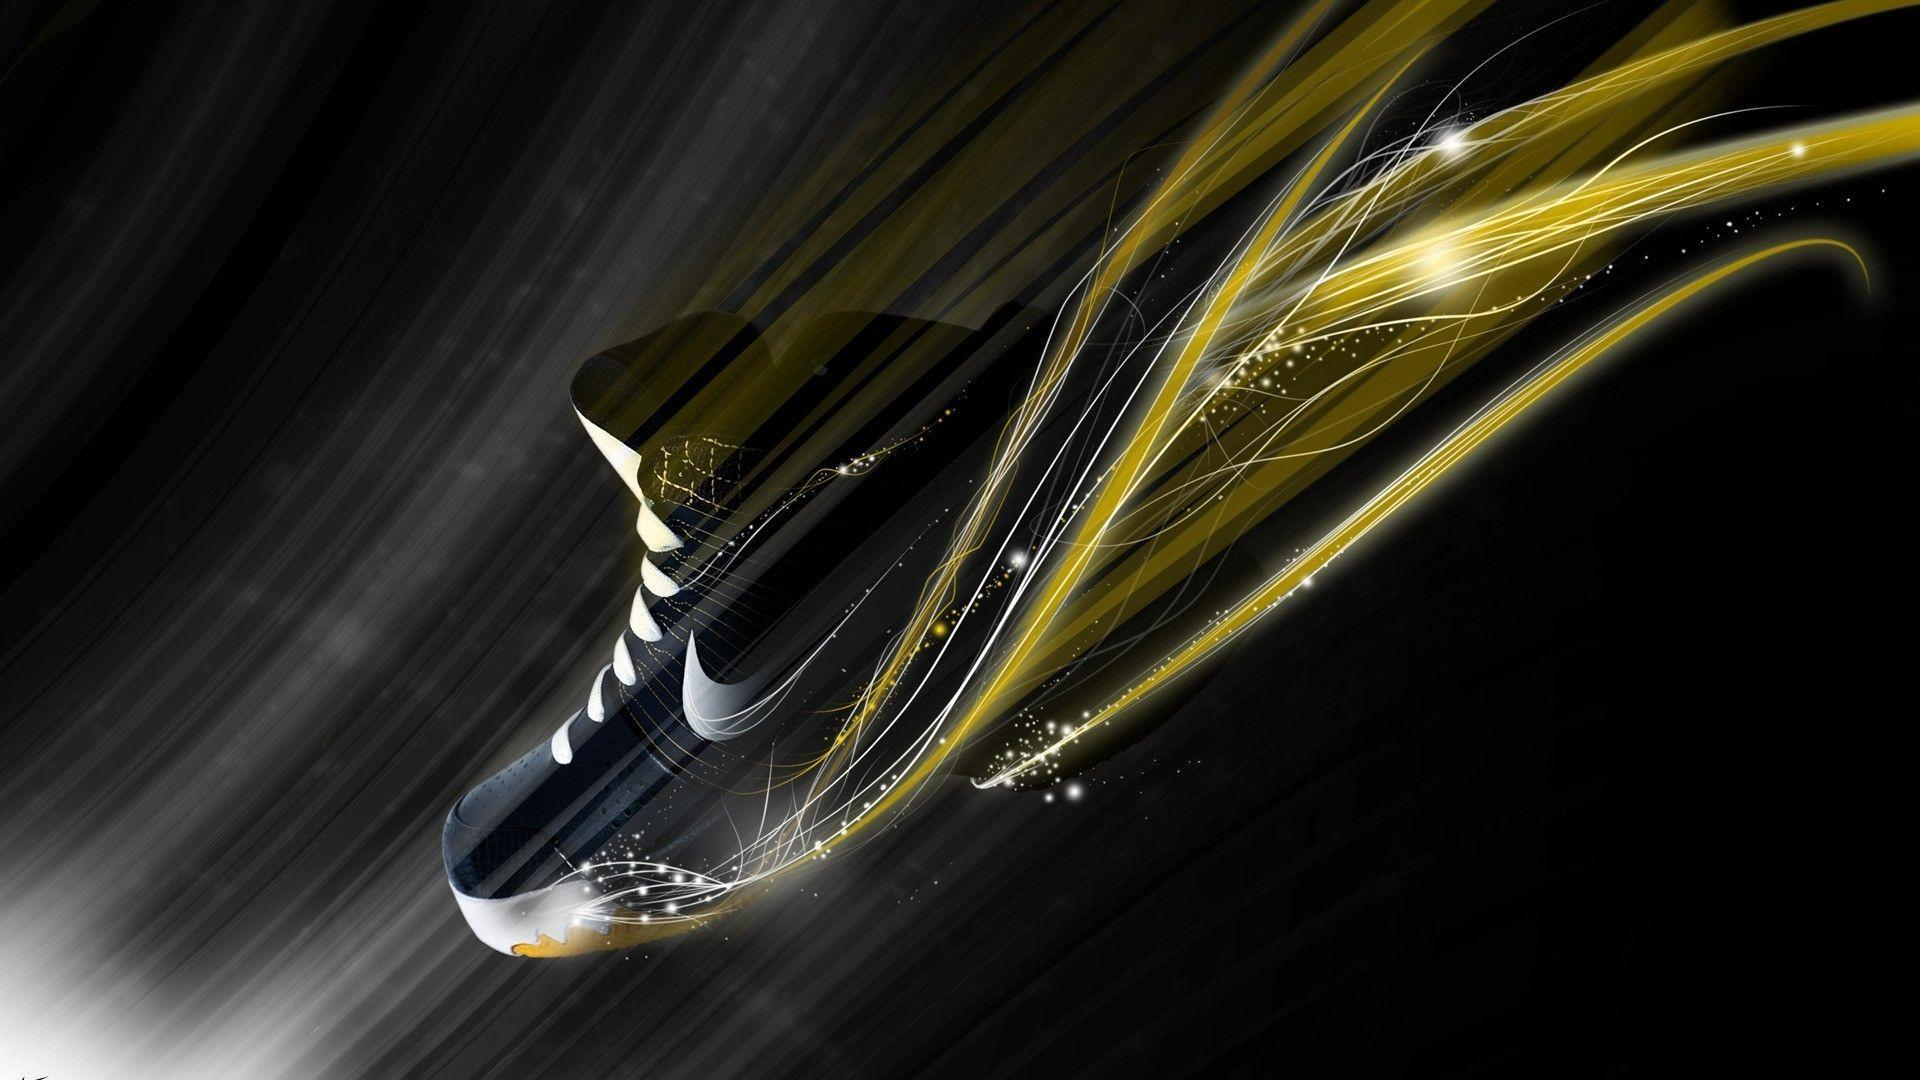 Sport Wallpaper Shoes Outlet: Nike Shoes Wallpapers